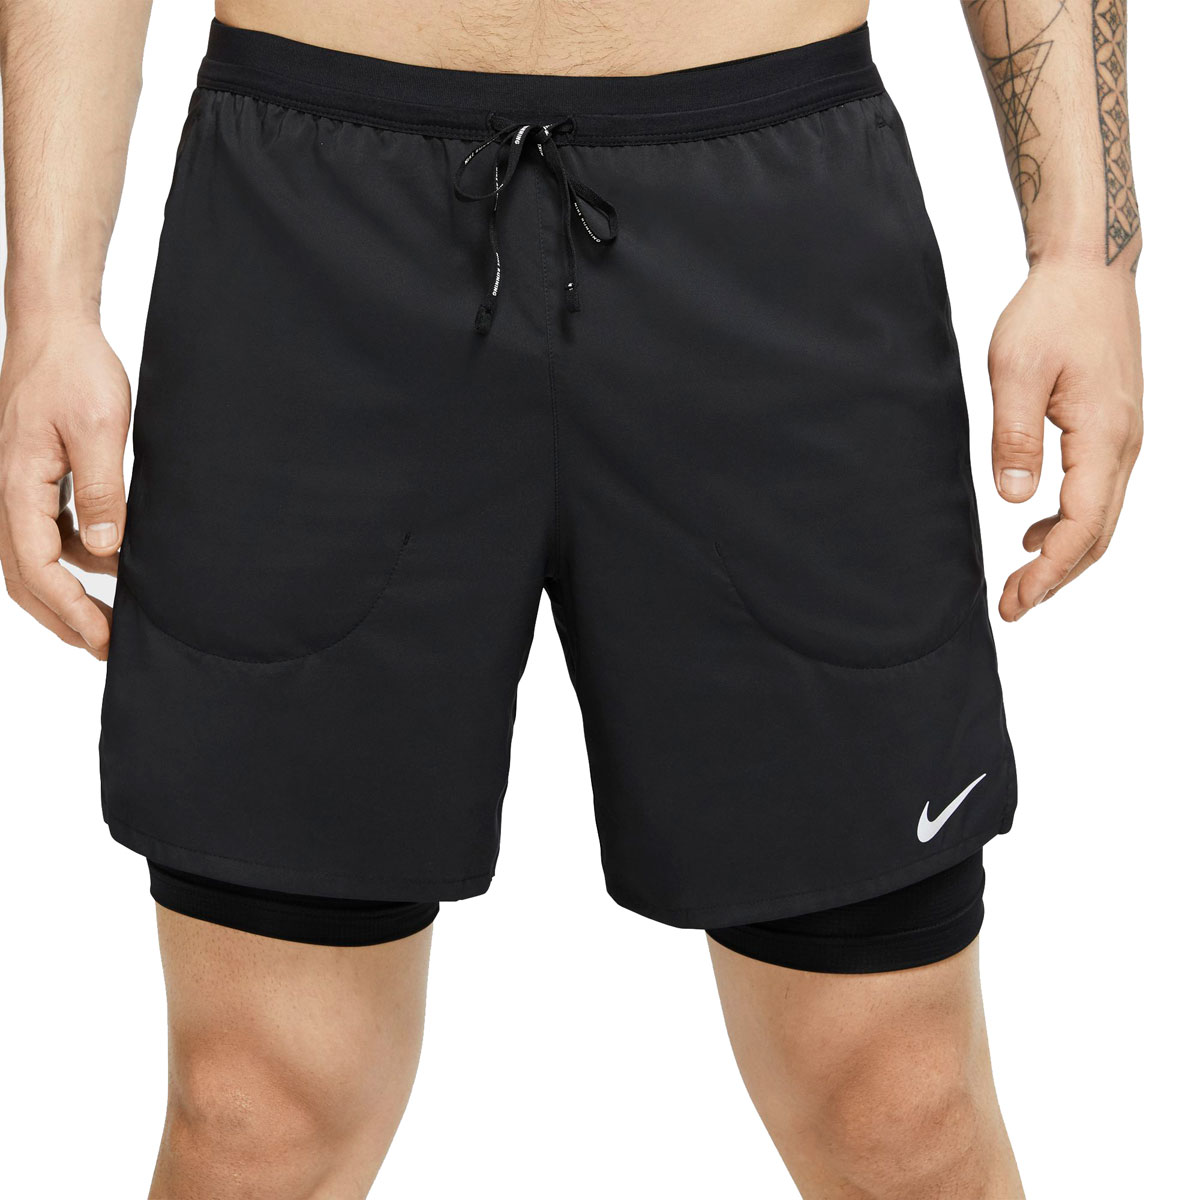 "Men's Nike Flex Stride 7"" 2-In-1 Running Shorts - Color: Black/Reflective Silver - Size: XXL, Black/Reflective Silver, large, image 1"